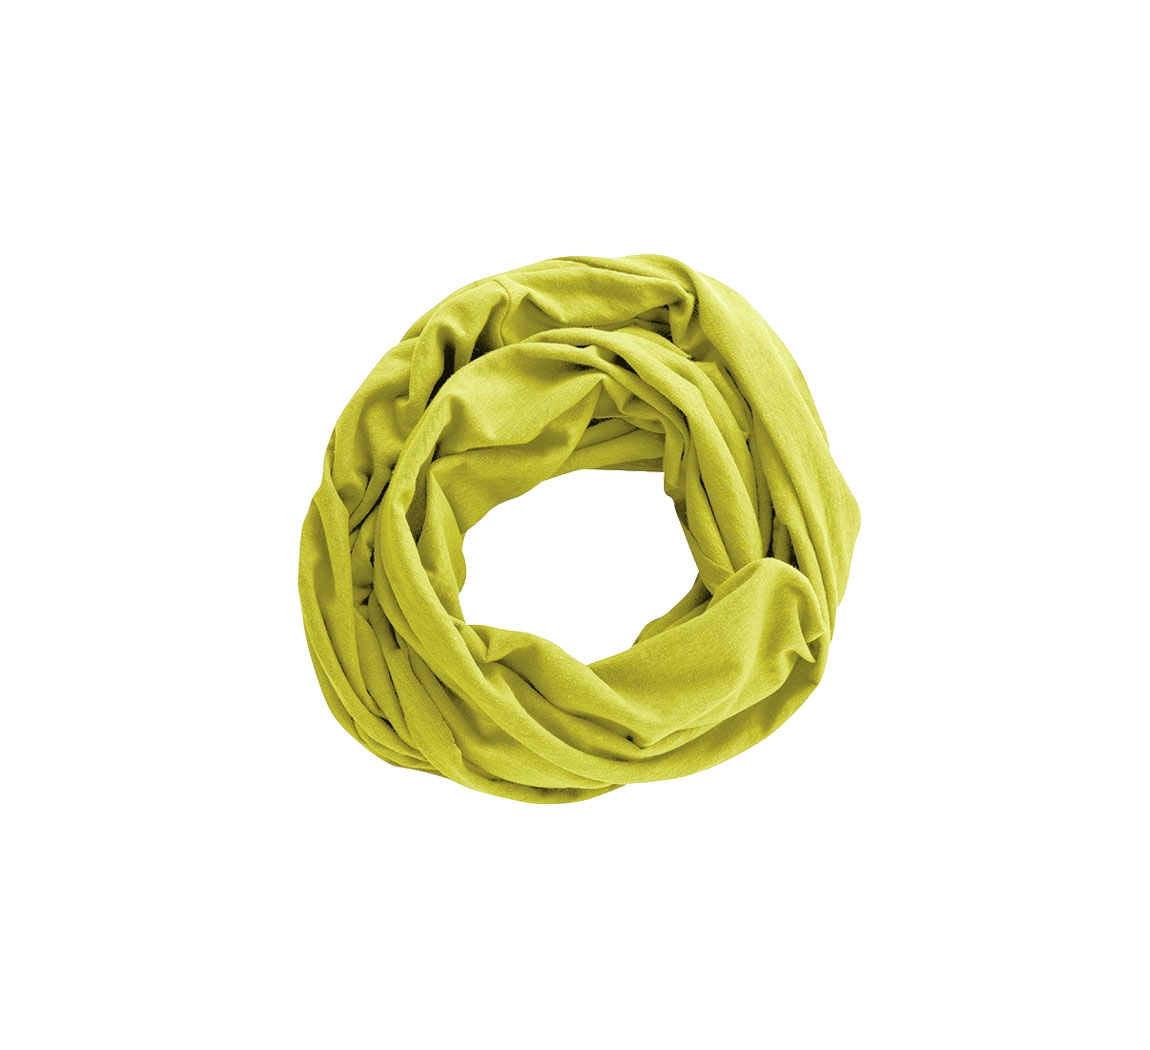 Snood en chanvre et coton bio Snood Kaa